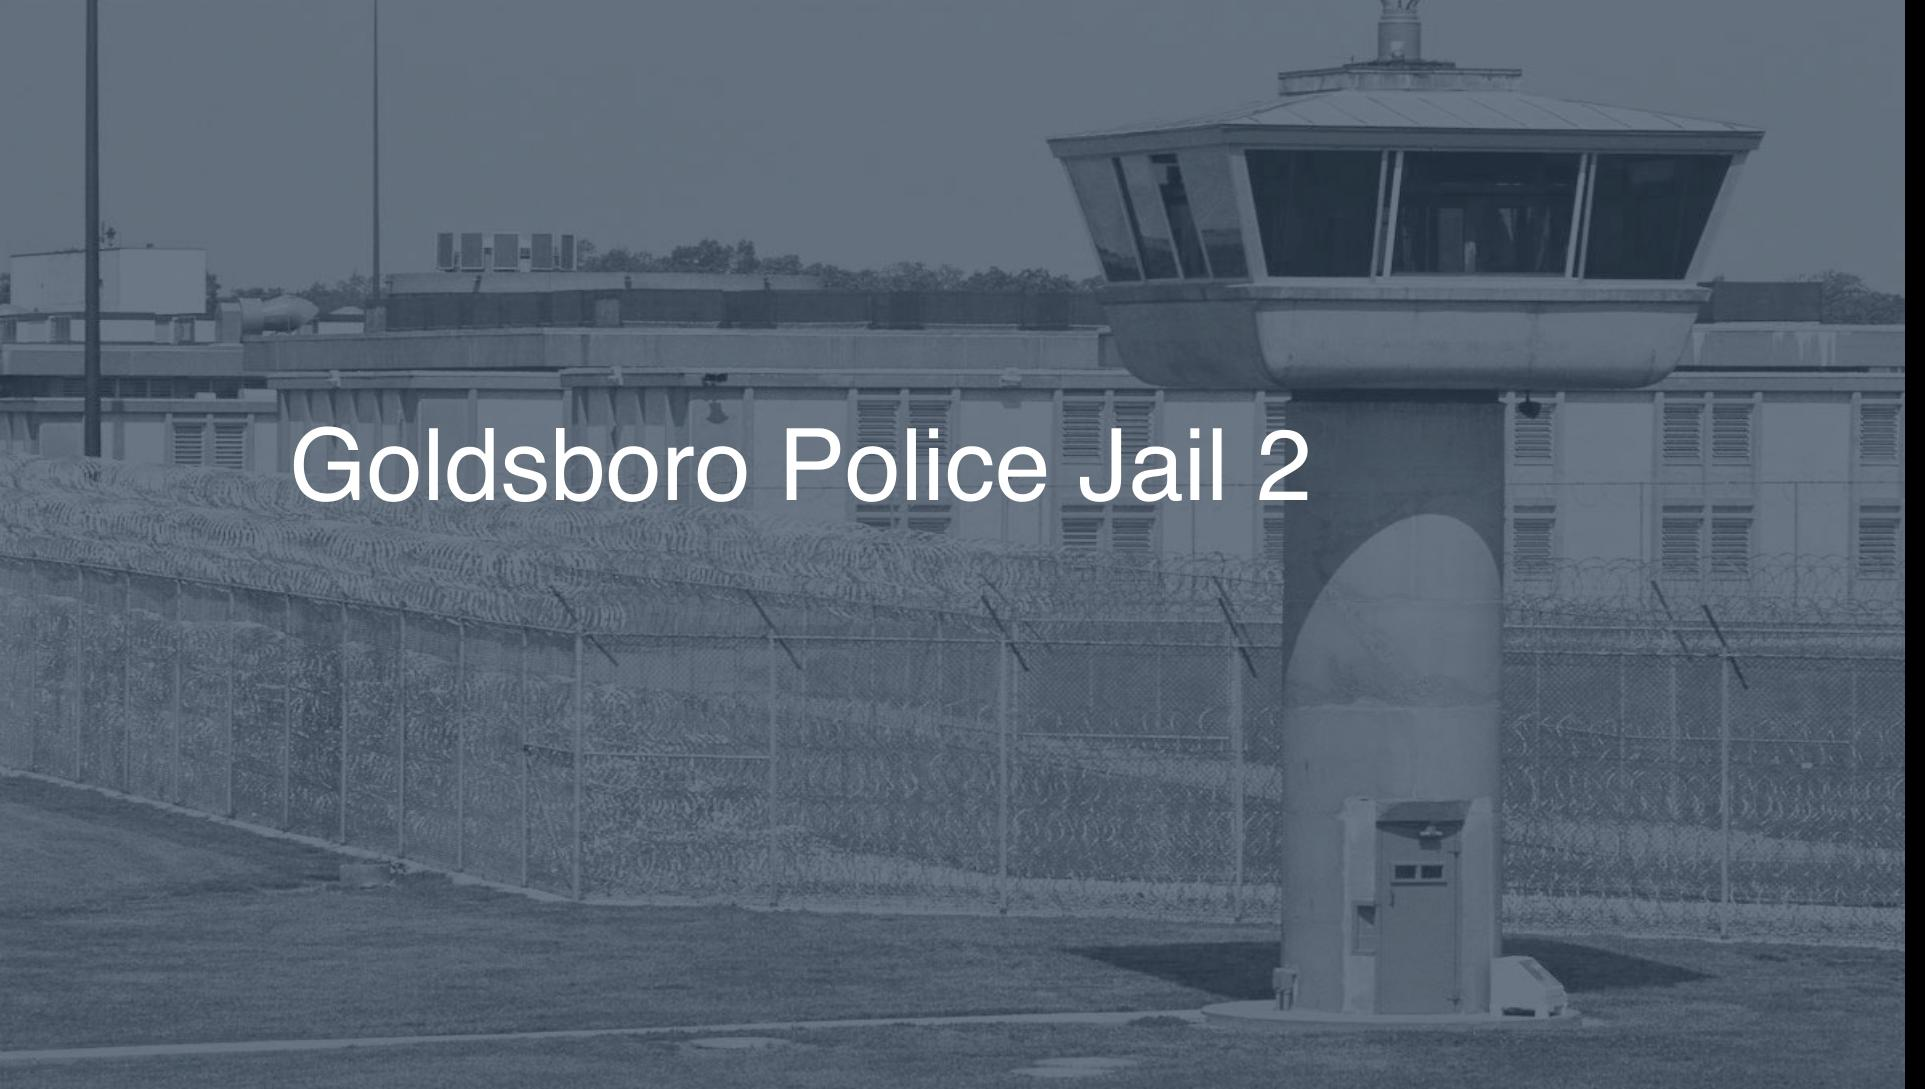 Goldsboro Police Jail | Pigeonly - Inmate Search, Locate